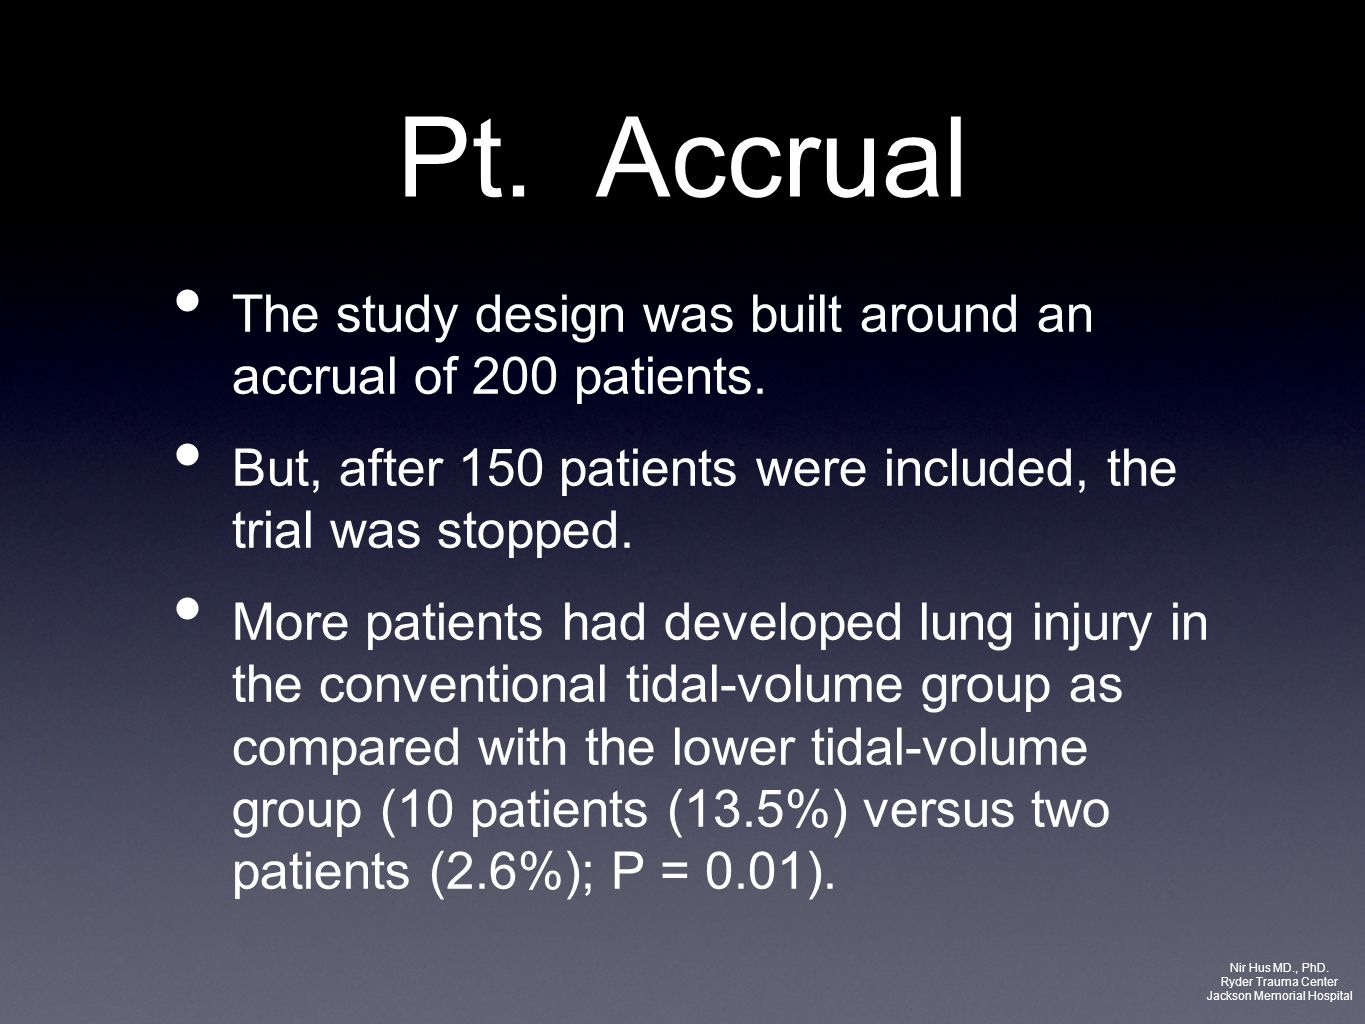 Pt. Accrual The study design was built around an accrual of 200 patients. But, after 150 patients were included, the trial was stopped. More patients